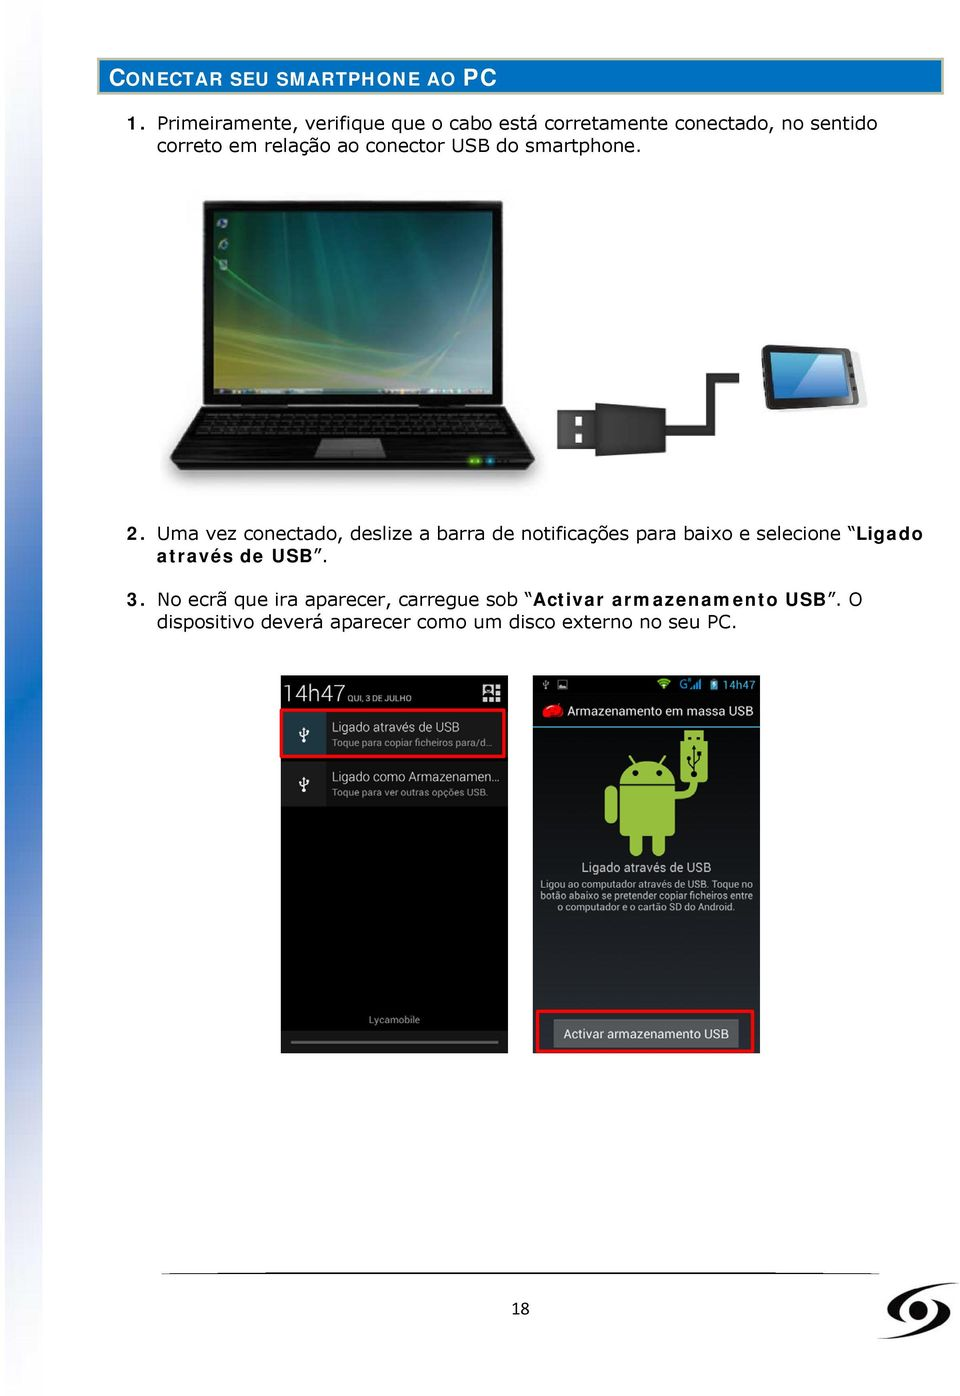 conector USB do smartphone. 2.